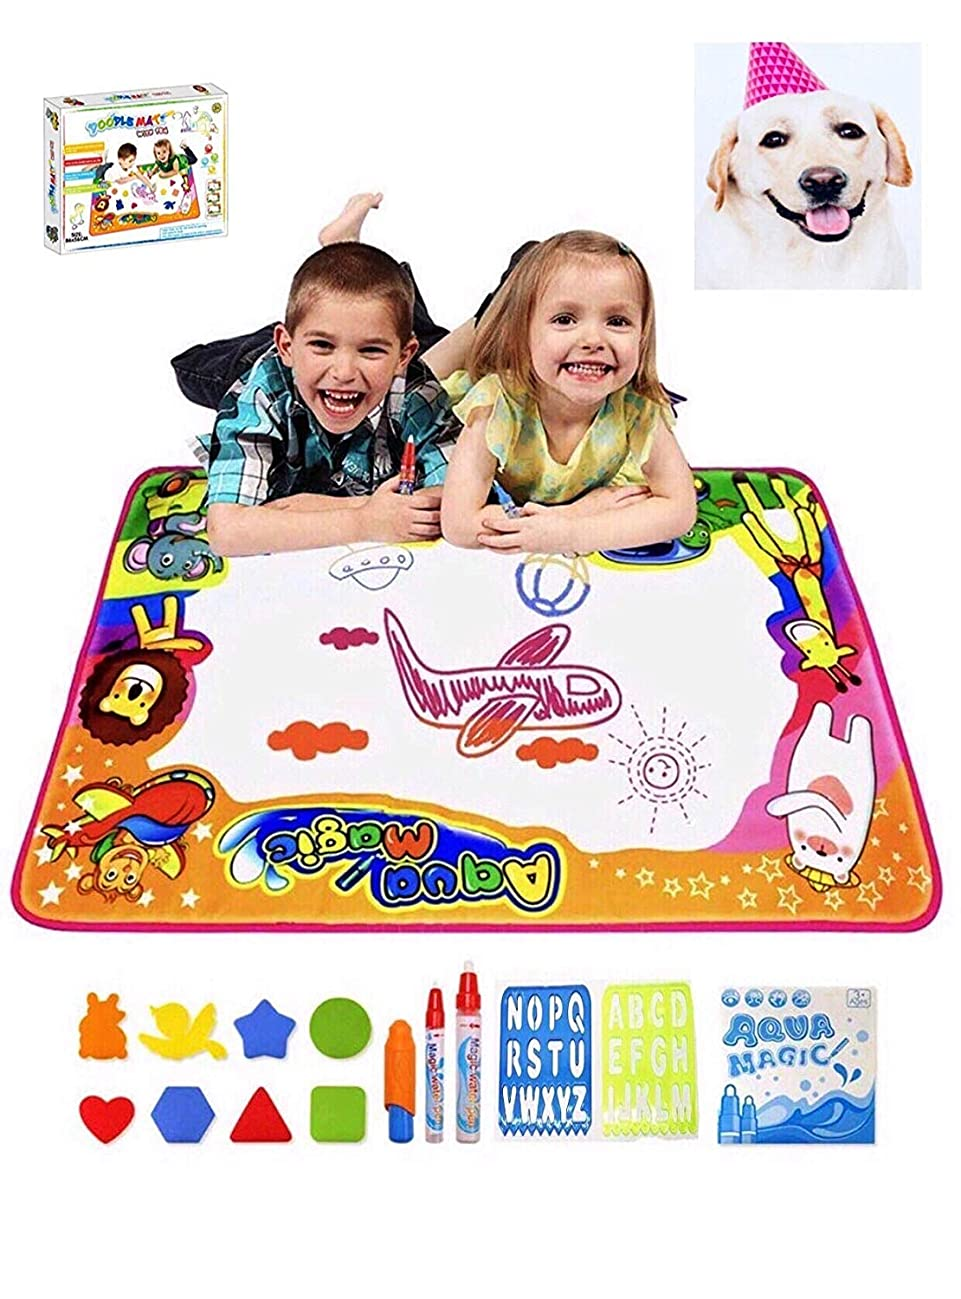 Wideword Water Drawing Mat Aqua Magic Doodle Kids Toys Mess Free Coloring Painting Educational Writing Mats Xmas Gift for Toddlers Boys Girls Age of 2,3,4,5,6 Year Old 34.5